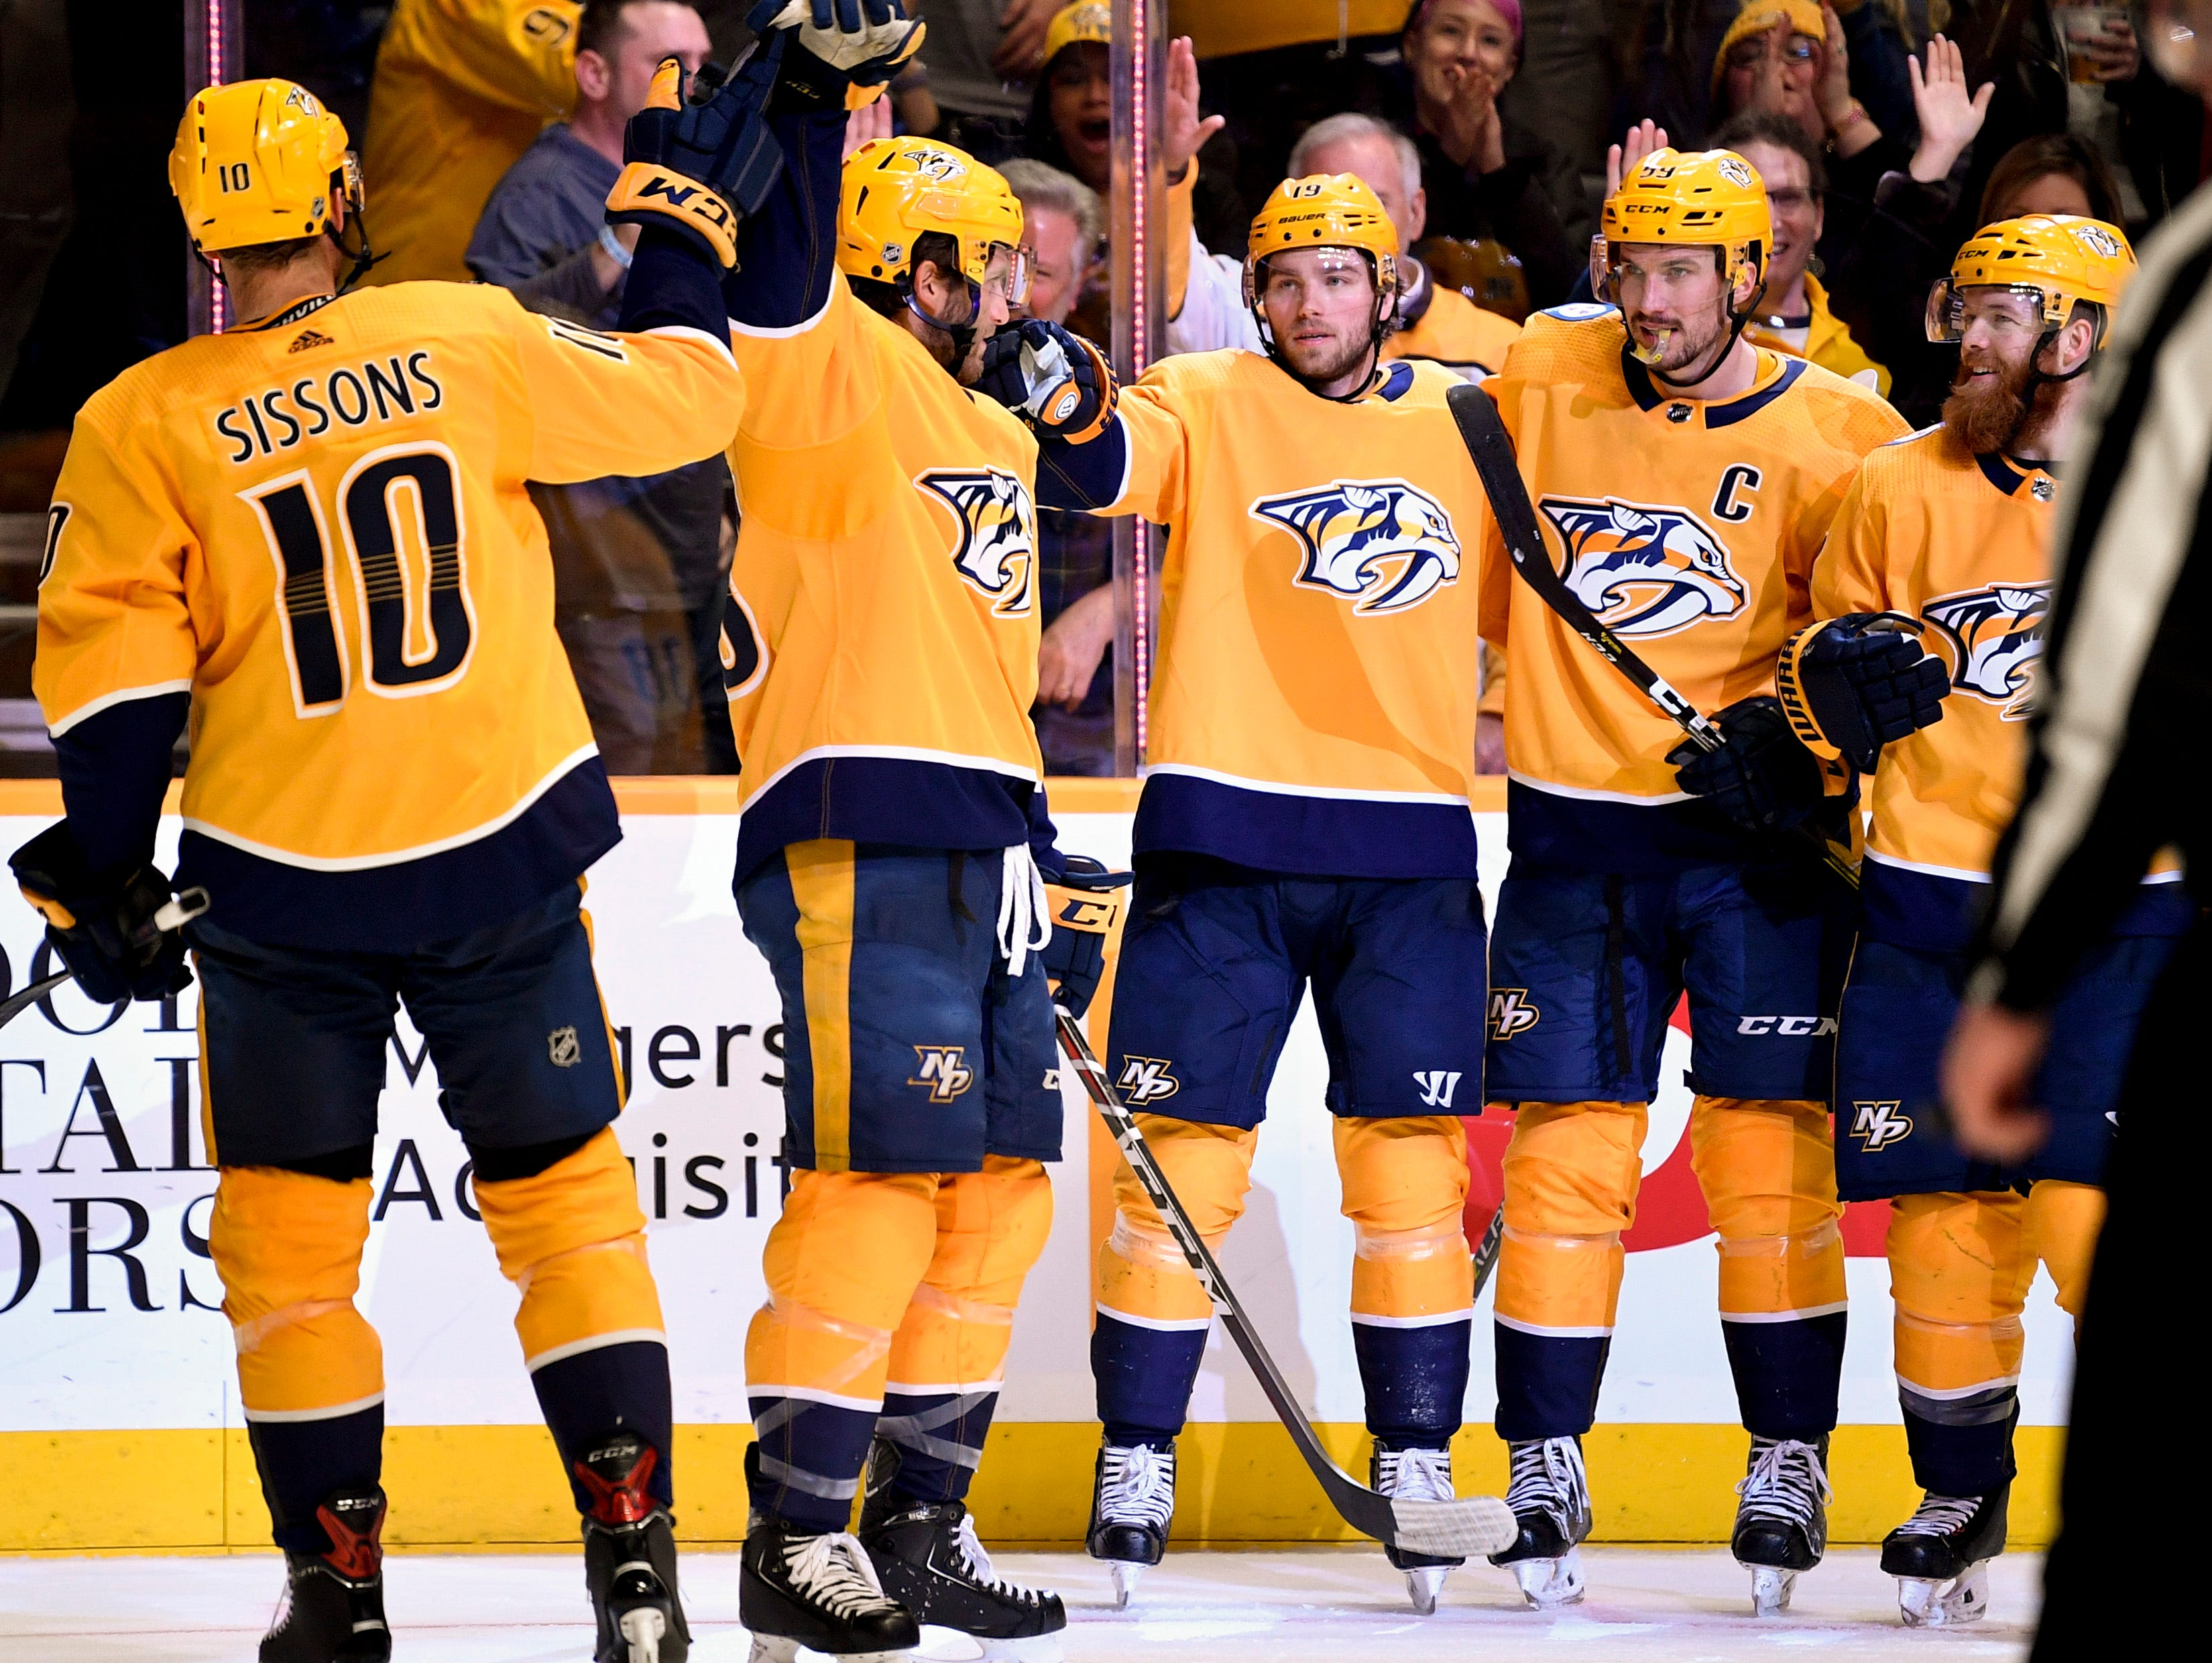 Feb. 5, 2019: Preds 5, Arizona 2 - Nashville Predators center Calle Jarnkrok (19, center) celebrates with teammates after scoring against the Arizona Coyotes during the third period at Bridgestone Arena in Nashville, Tenn., Tuesday, Feb. 5, 2019.